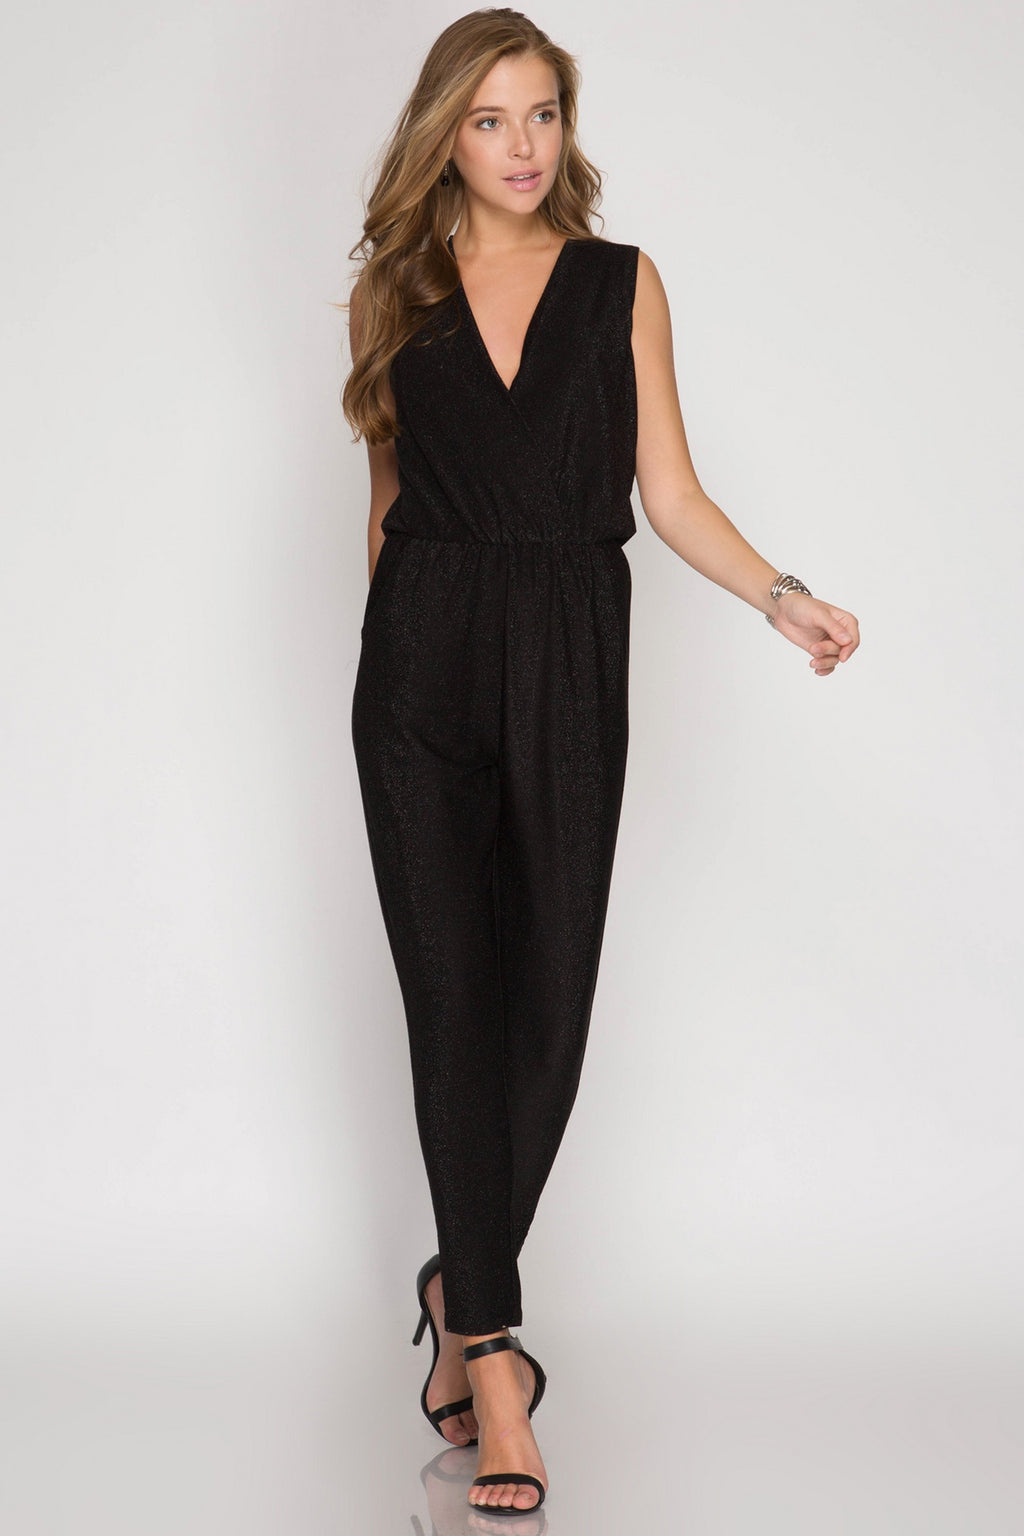 Metallic Black Sleeveless Jumpsuit